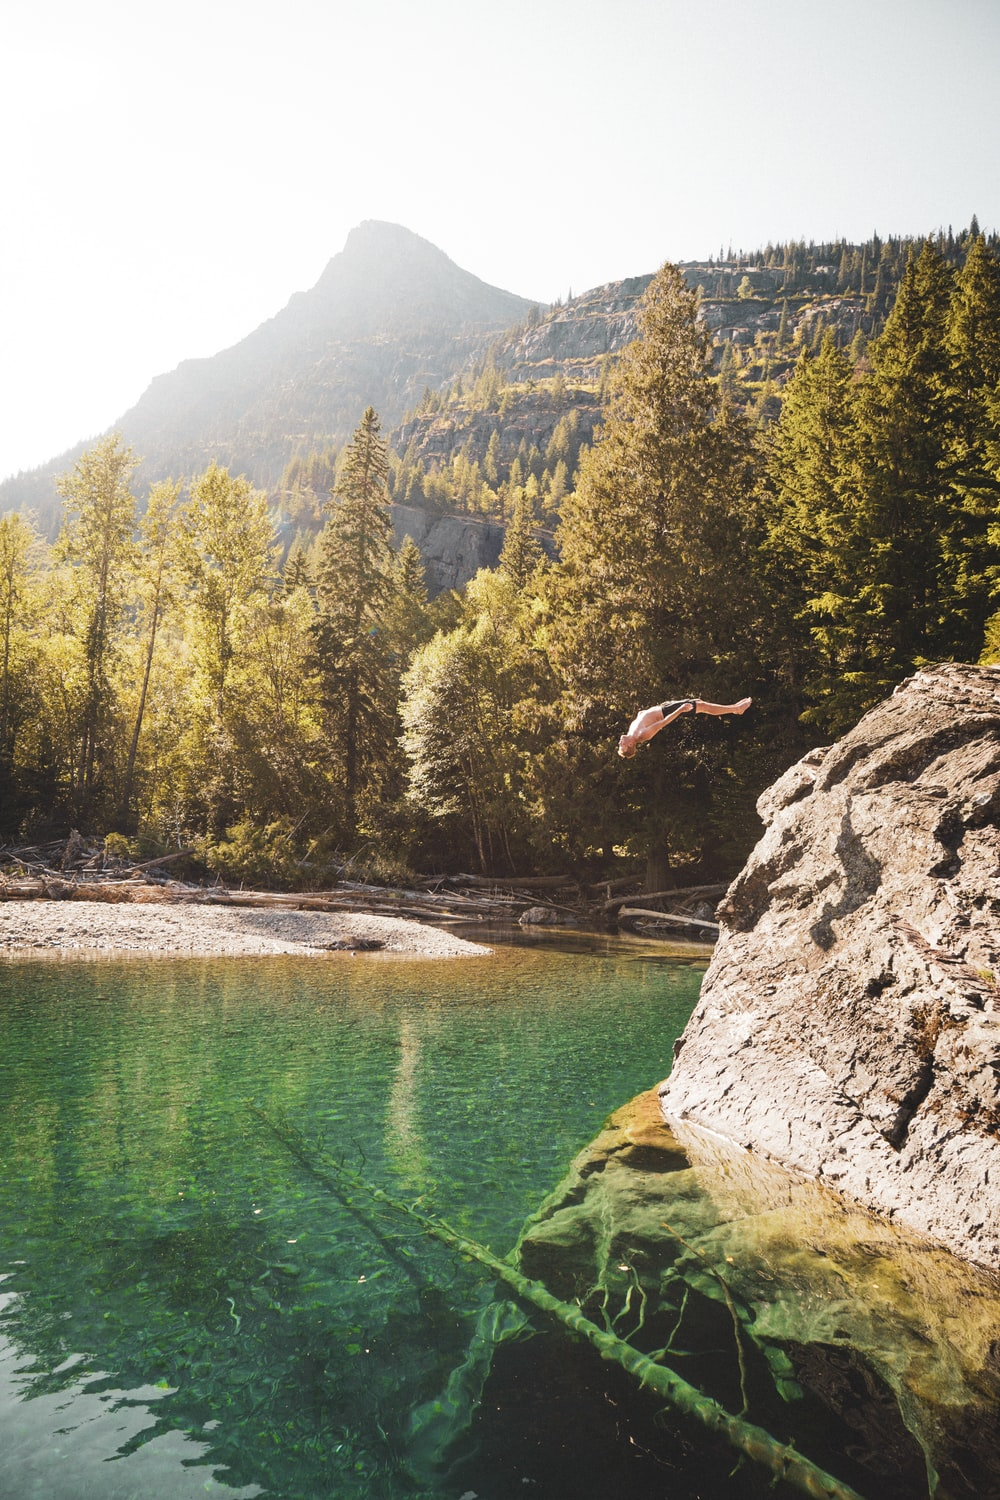 person jumping on water near green trees and mountain during daytime